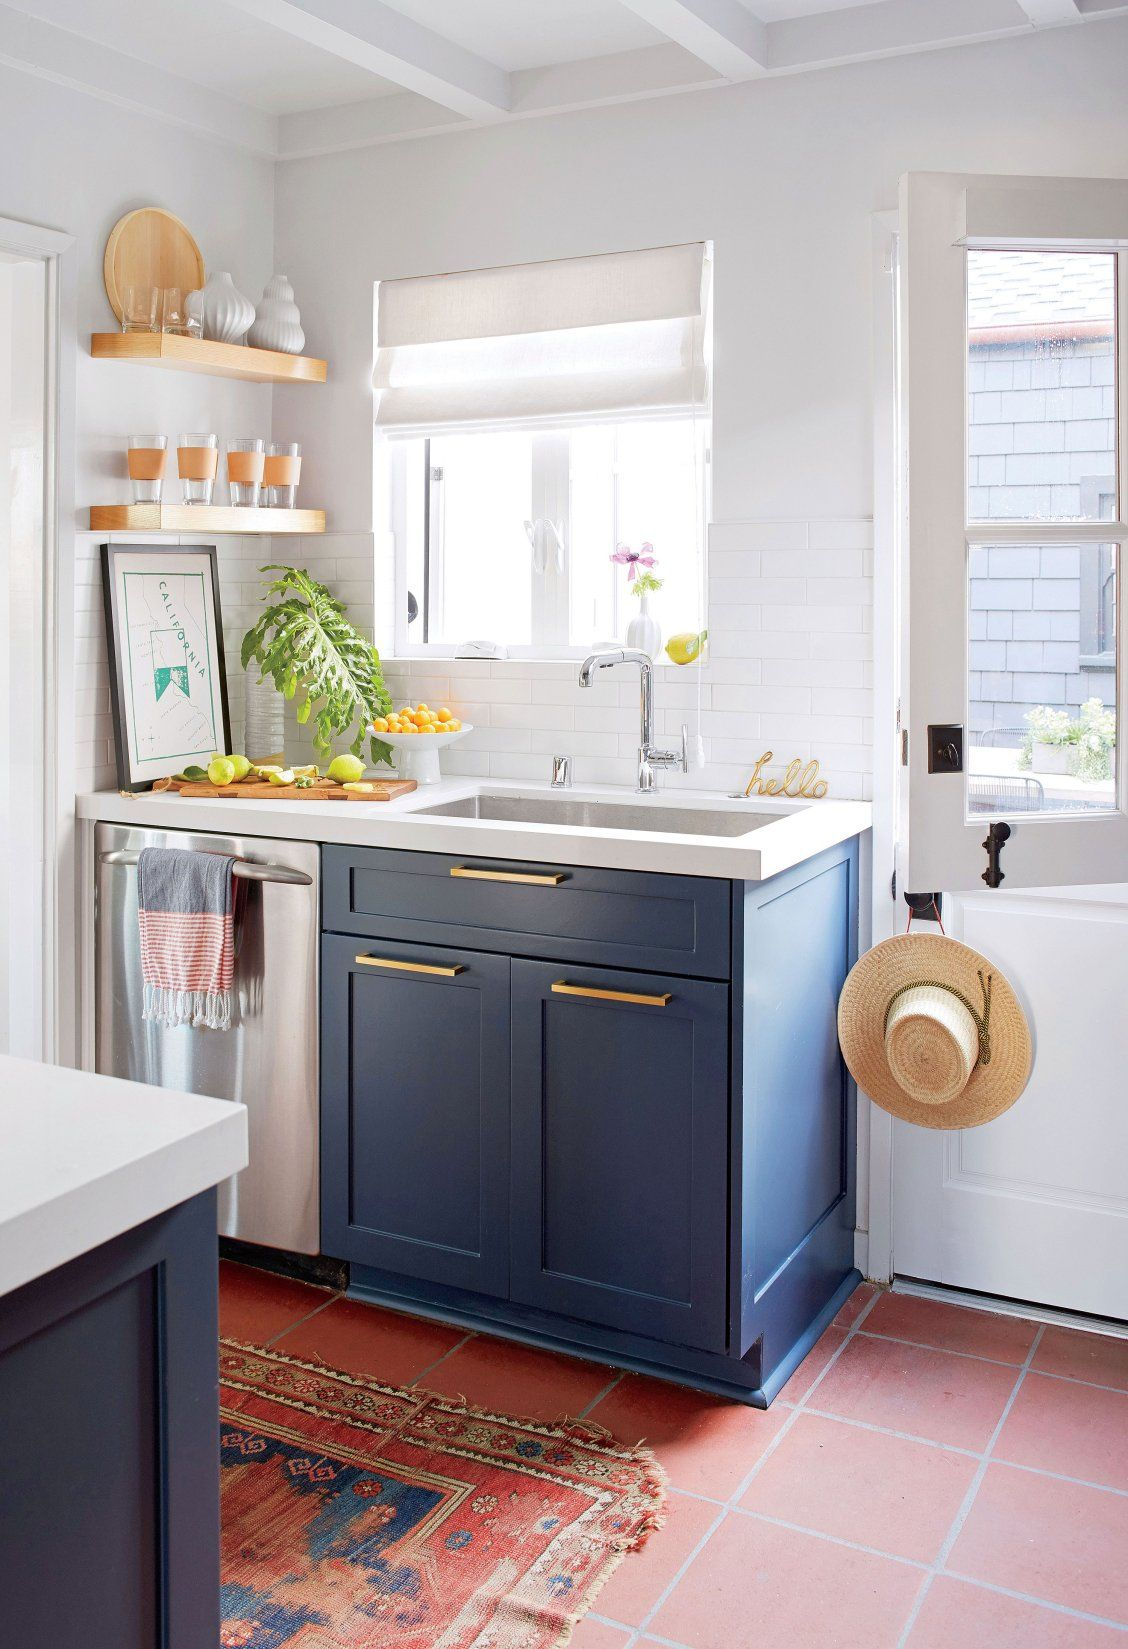 This Charming Bungalow Is 15 Steps From The Beach Beach House Kitchens Bungalow Kitchen Cottage Kitchen Design